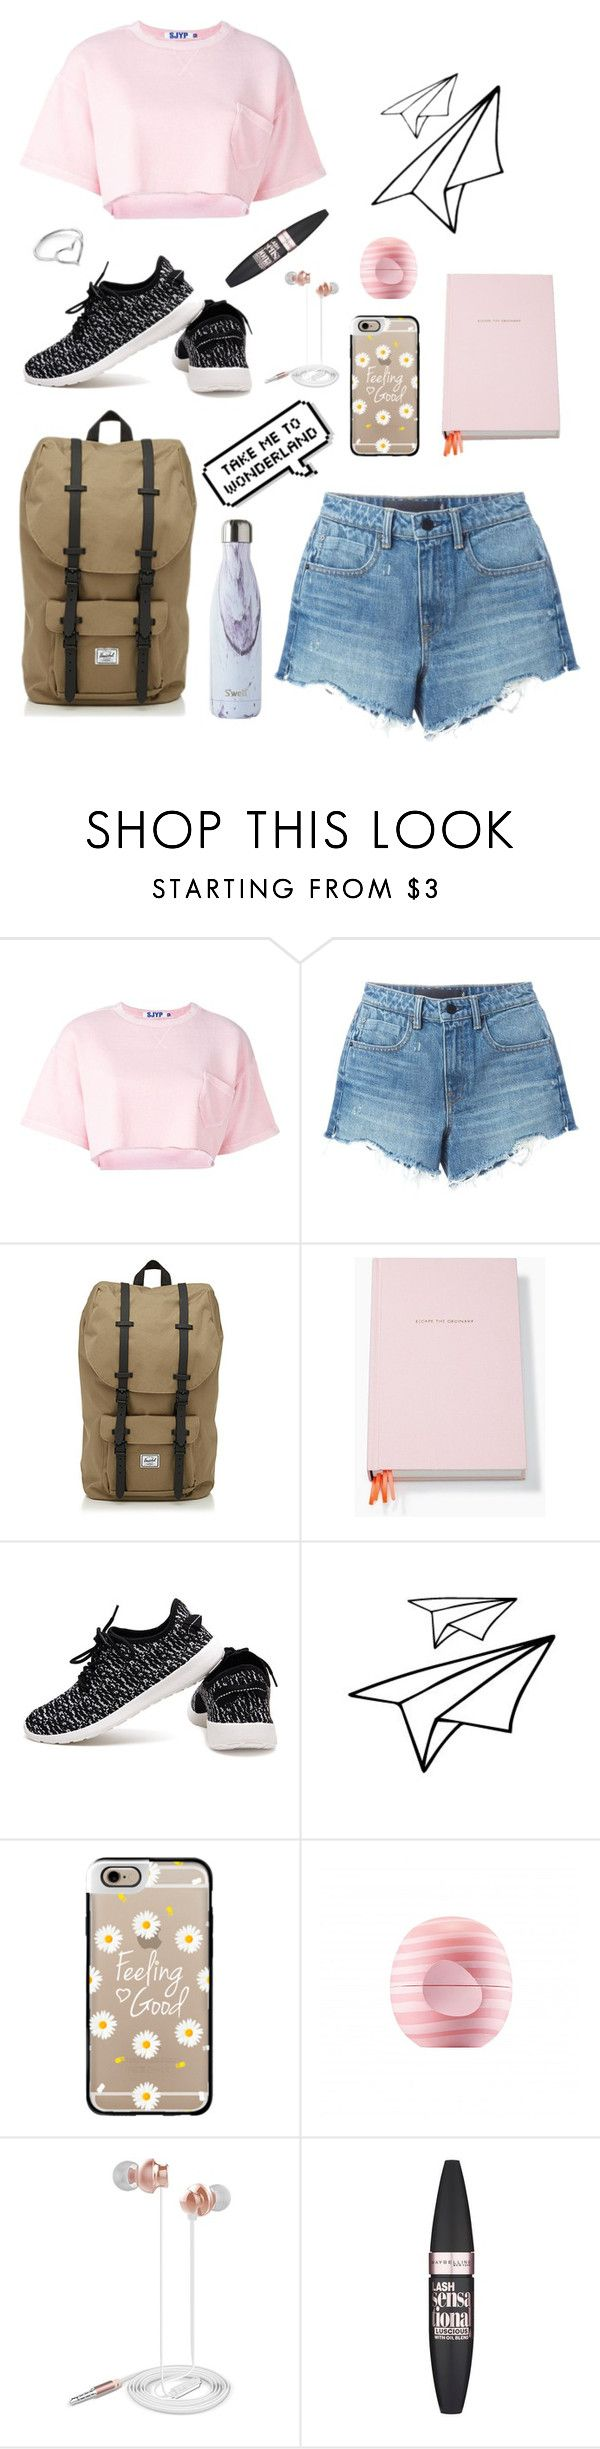 """""""Pink Wonderland💕"""" by kylieirwin11 ❤ liked on Polyvore featuring Steve J & Yoni P, Alexander Wang, Herschel, Kate Spade, Casetify, Eos, Nicole Miller, Maybelline and Jordan Askill"""